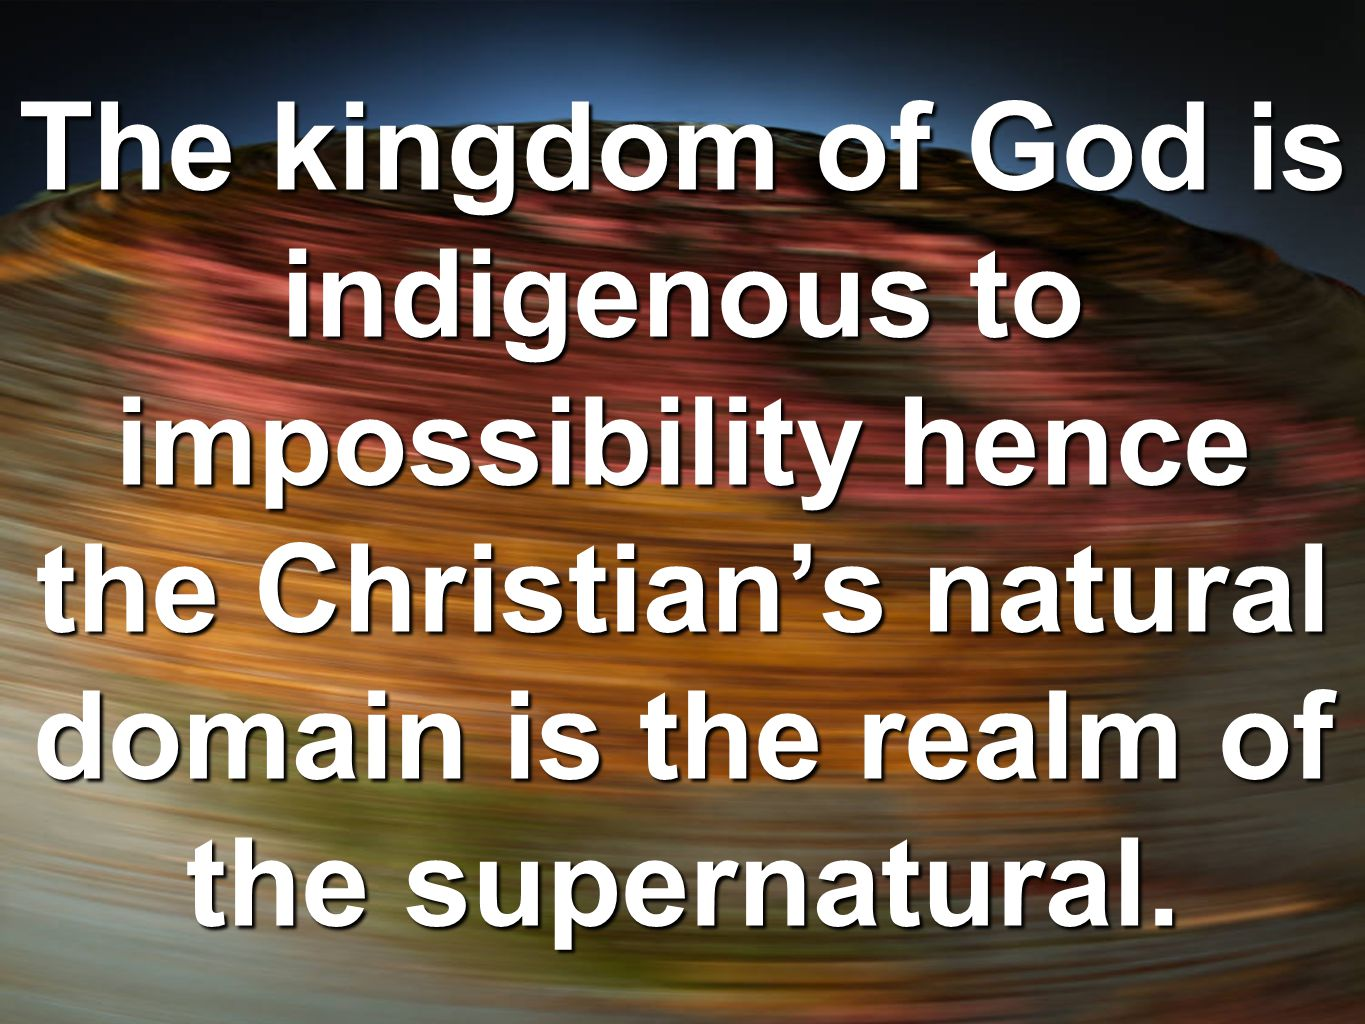 The kingdom of God is indigenous to impossibility hence the Christian's natural domain is the realm of the supernatural.